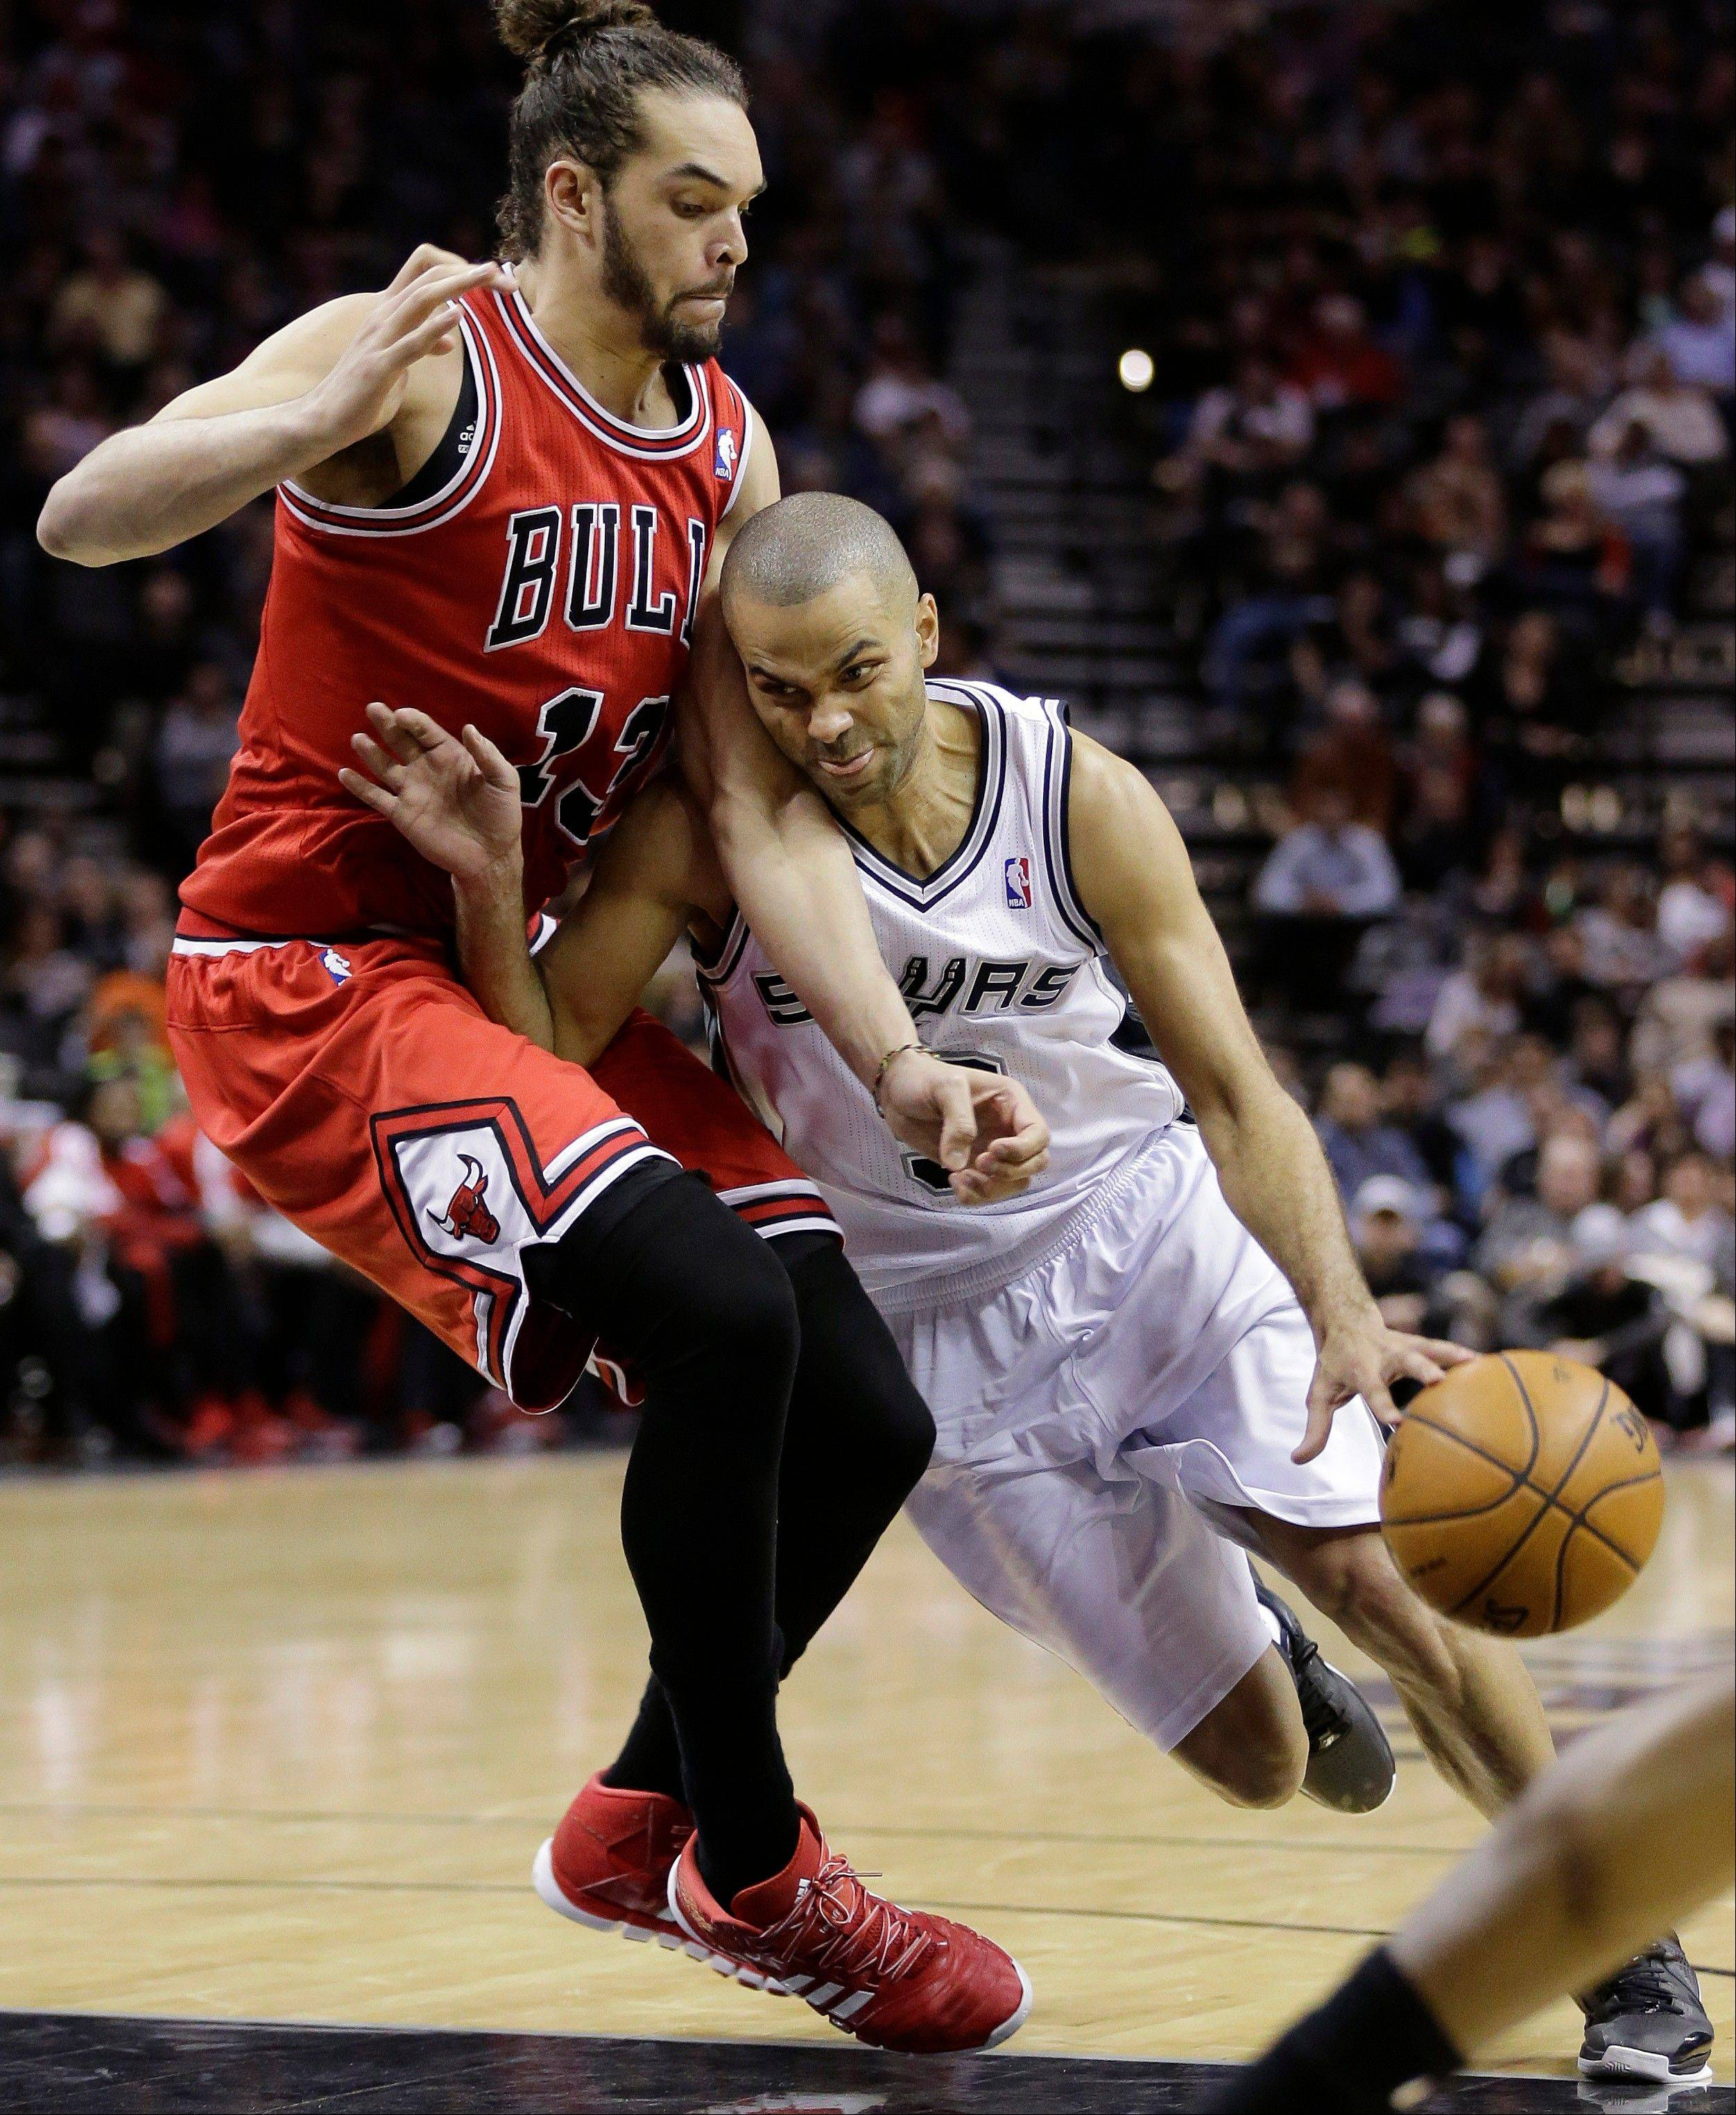 The Spurs' Tony Parker drives around the Bulls' Joakim Noah during the first half of Wednesday's game in San Antonio.